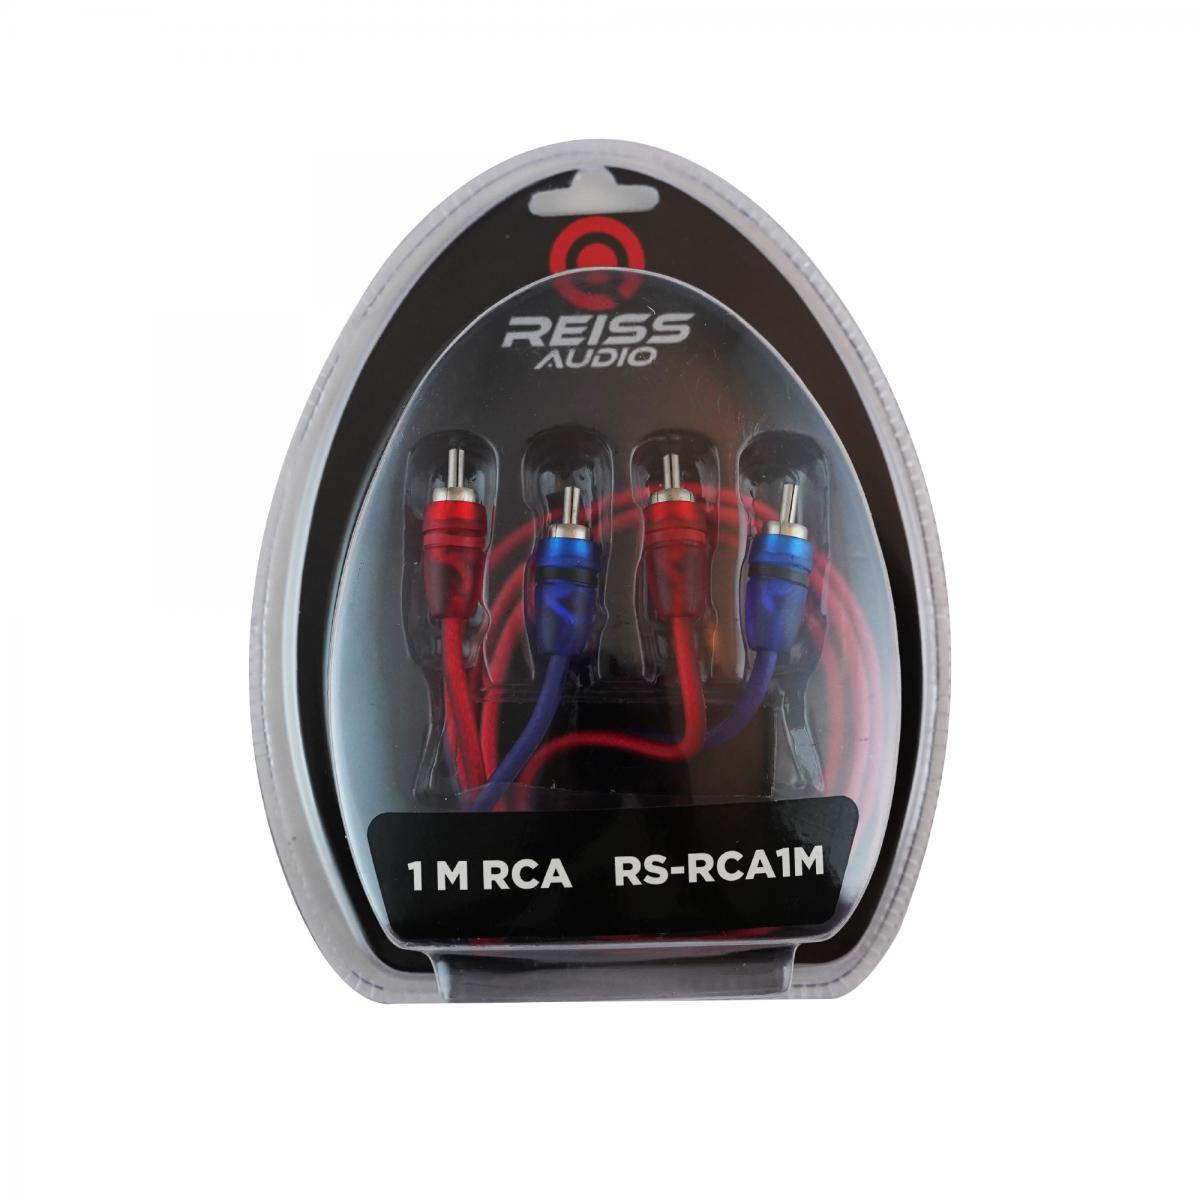 RS-RCA1M